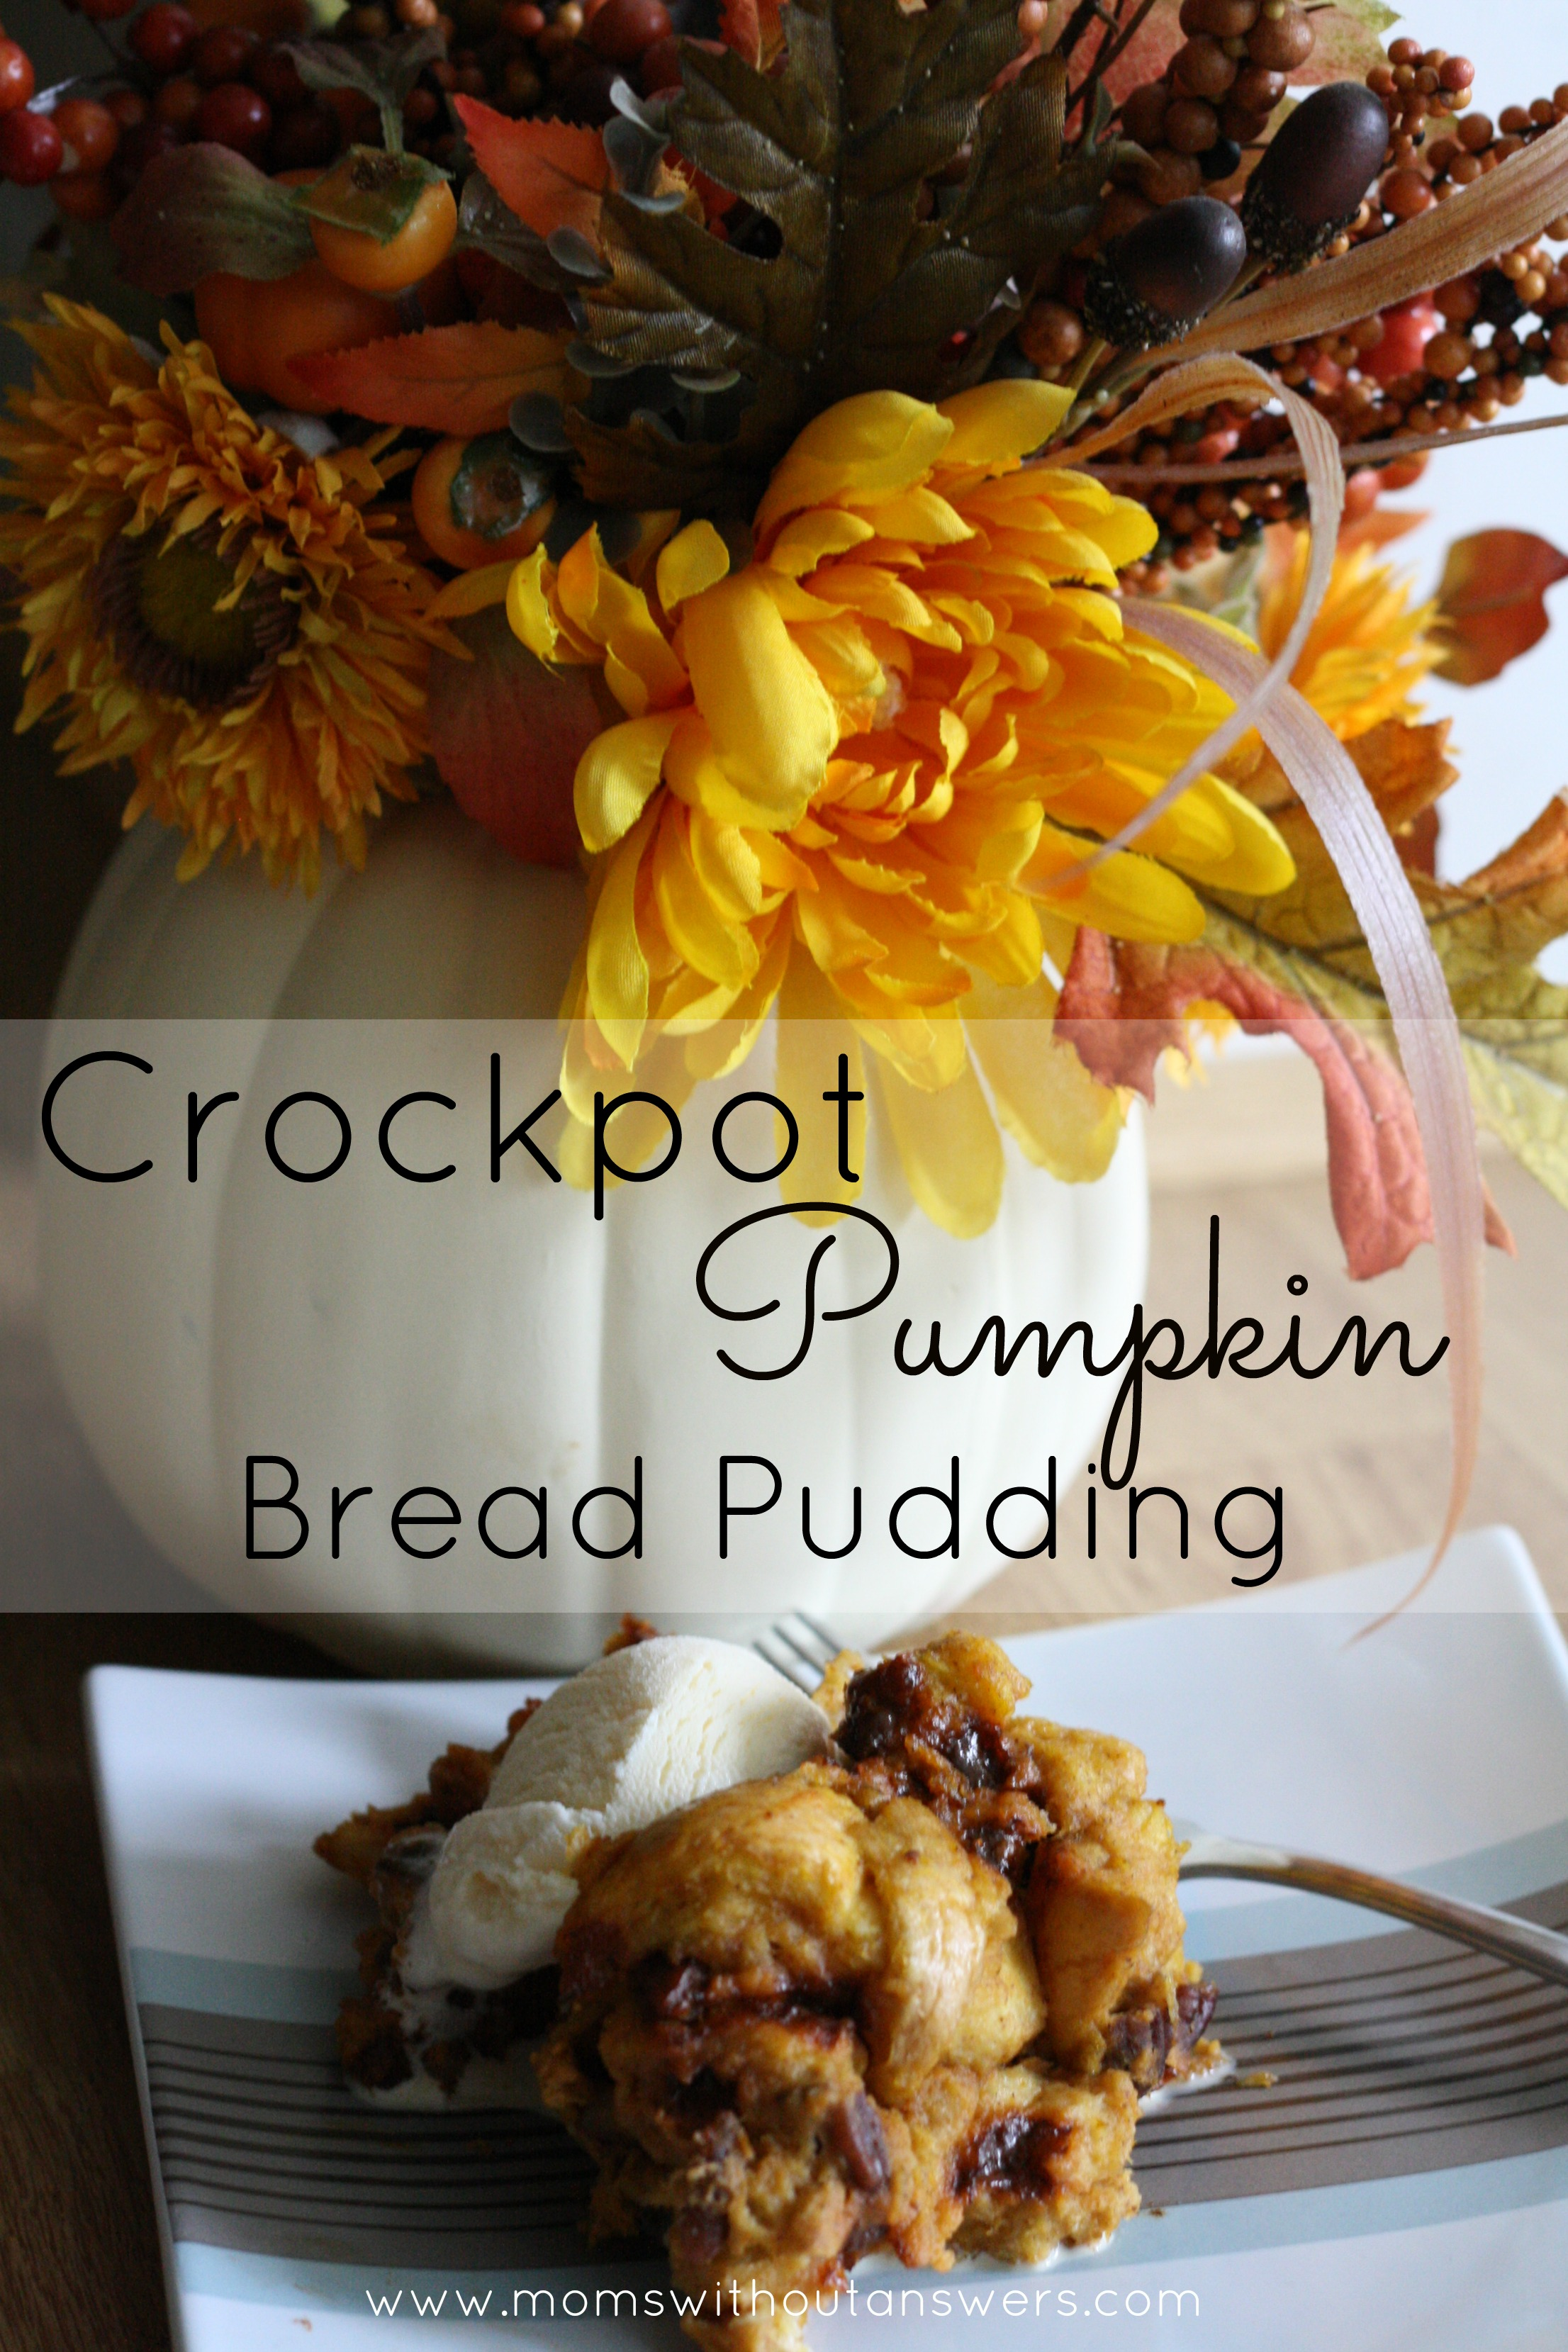 Crockpot Pumpkin Bread Pudding